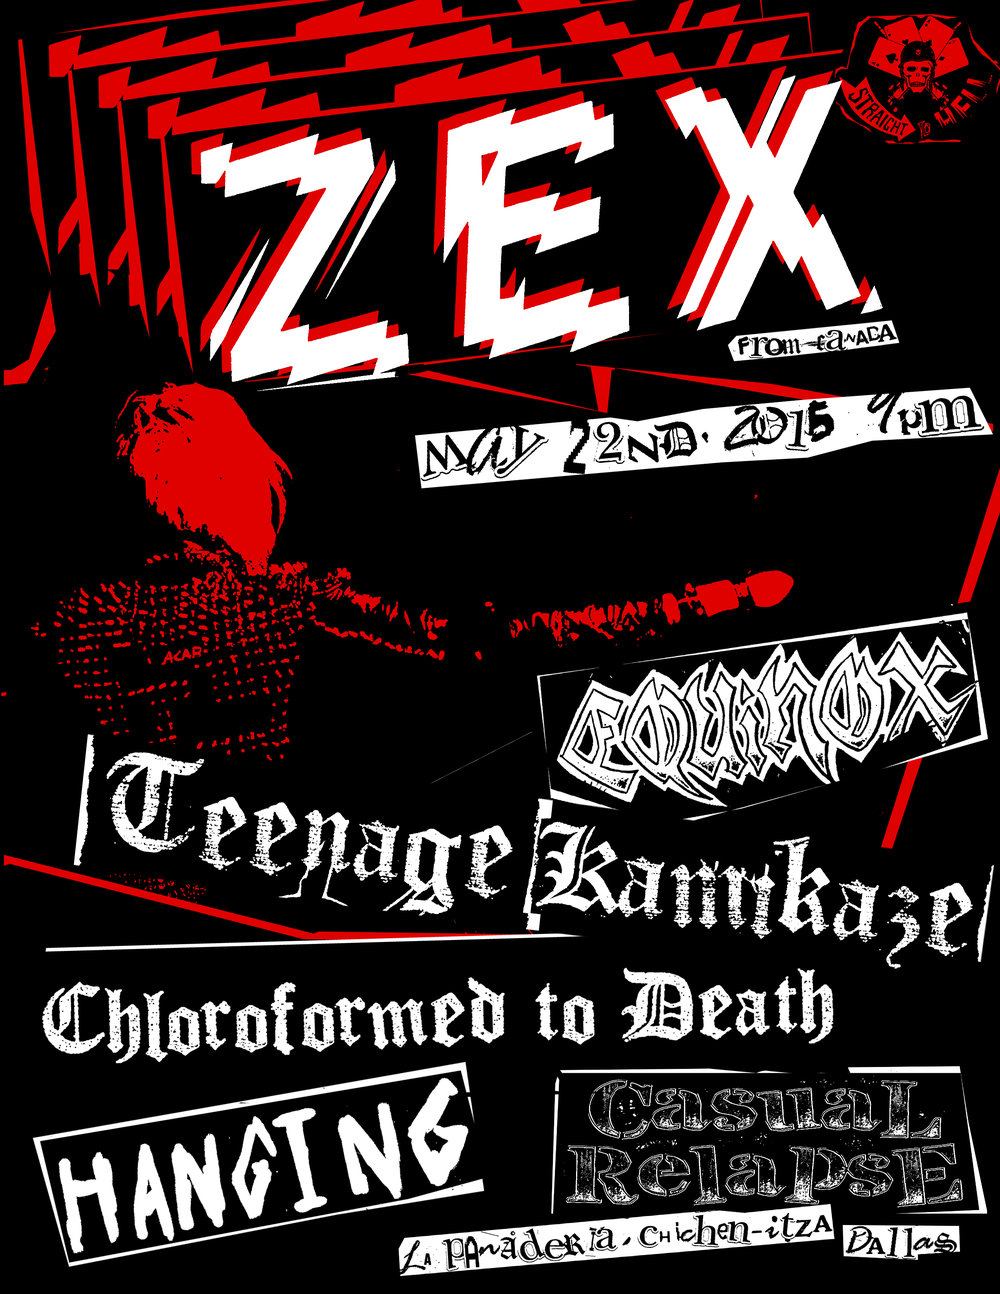 flyer-15.05.22-dallas-zex-red.jpg